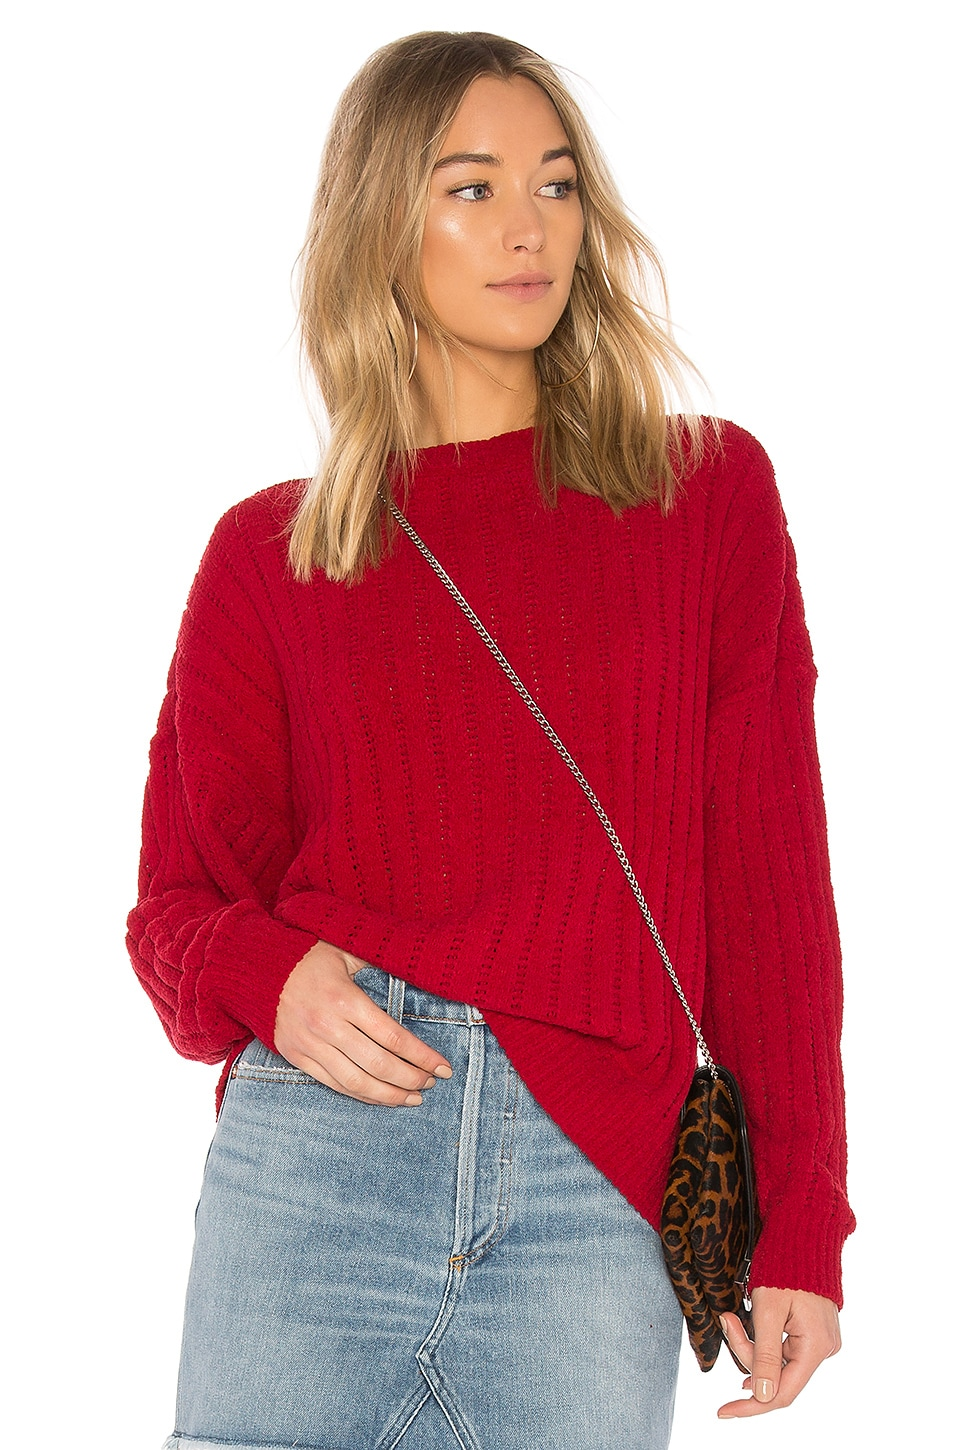 Lovers + Friends x REVOLVE Crescent Sweater in Red